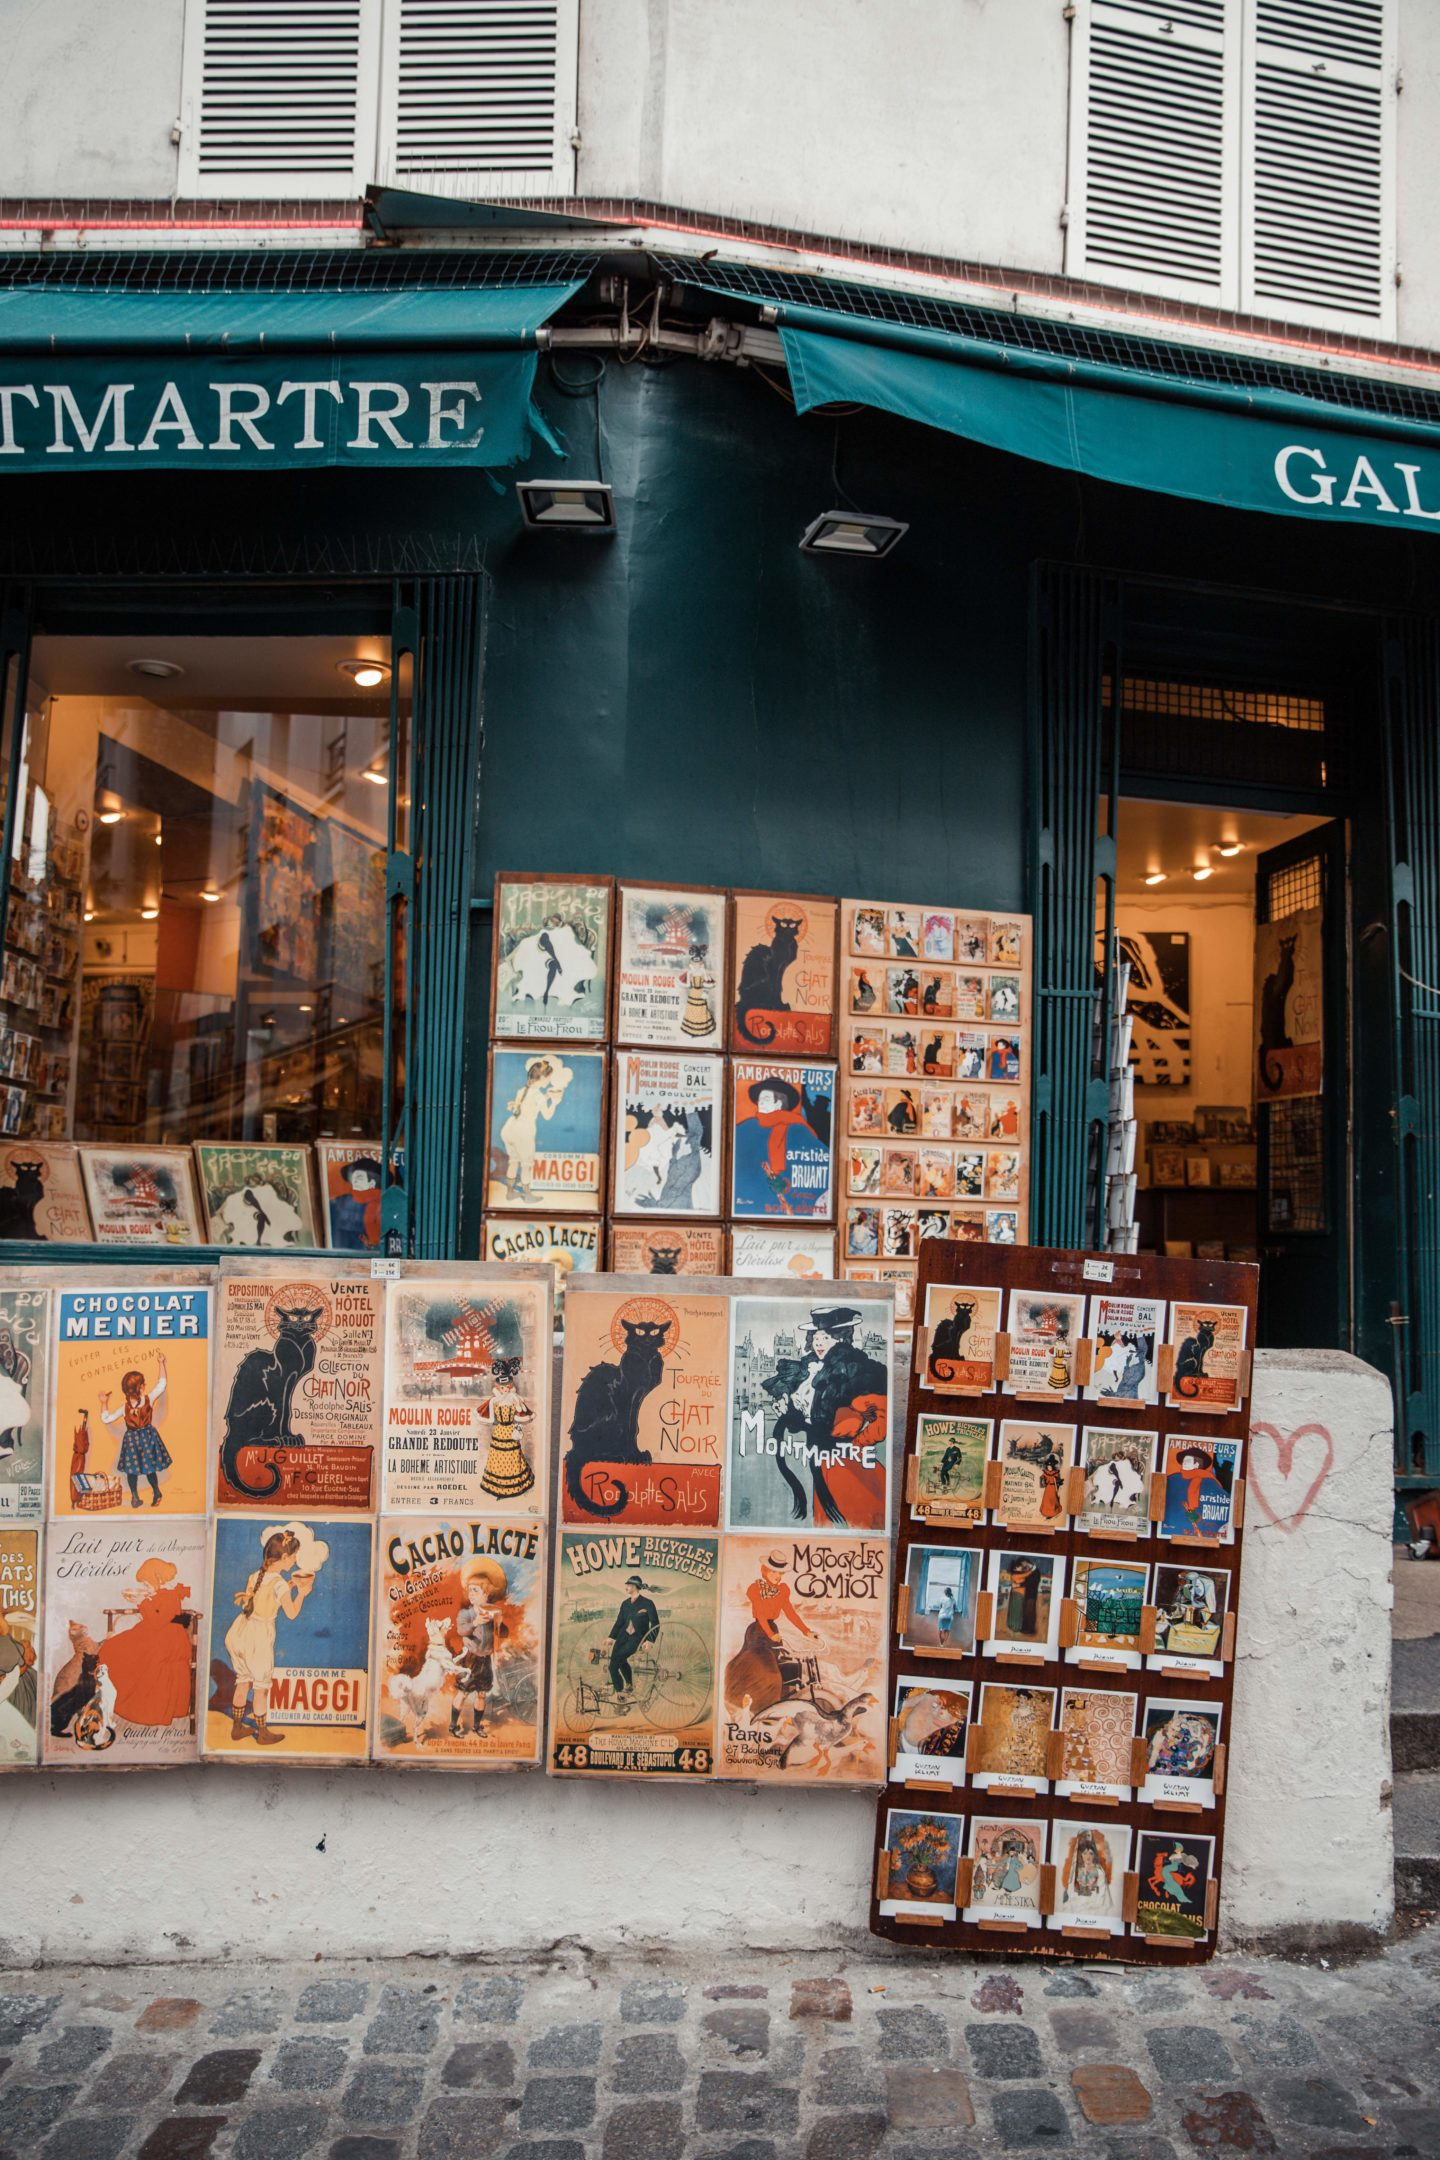 Blogger's travel guide to Paris | Top things to do and see in Paris France | Paris Photography Inspiration | Dana Berez Travel Guide Montmartre Paris Photogprahy